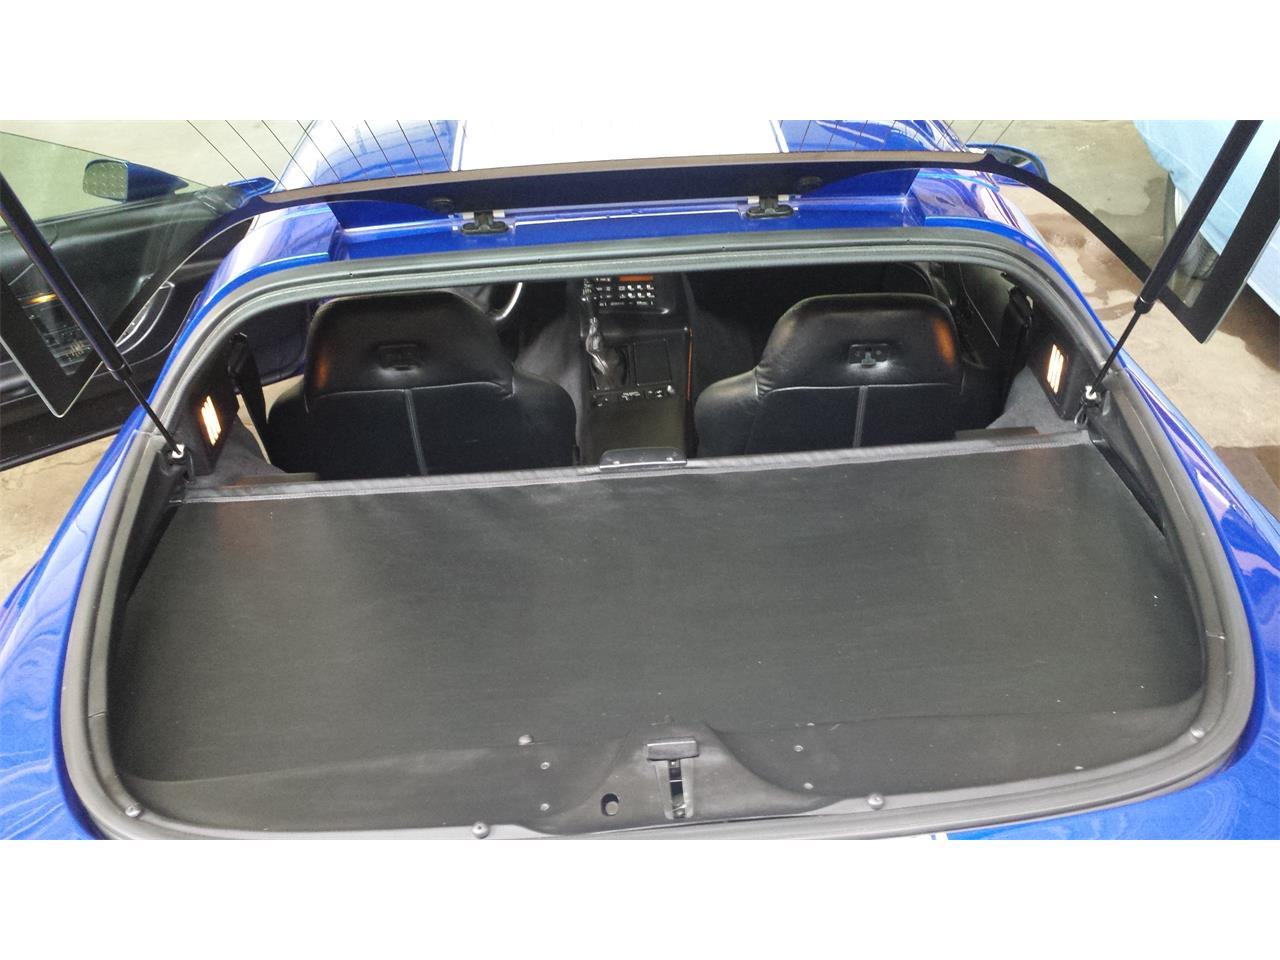 Large Picture of '96 Chevrolet Corvette - $36,000.00 Offered by a Private Seller - MXIW